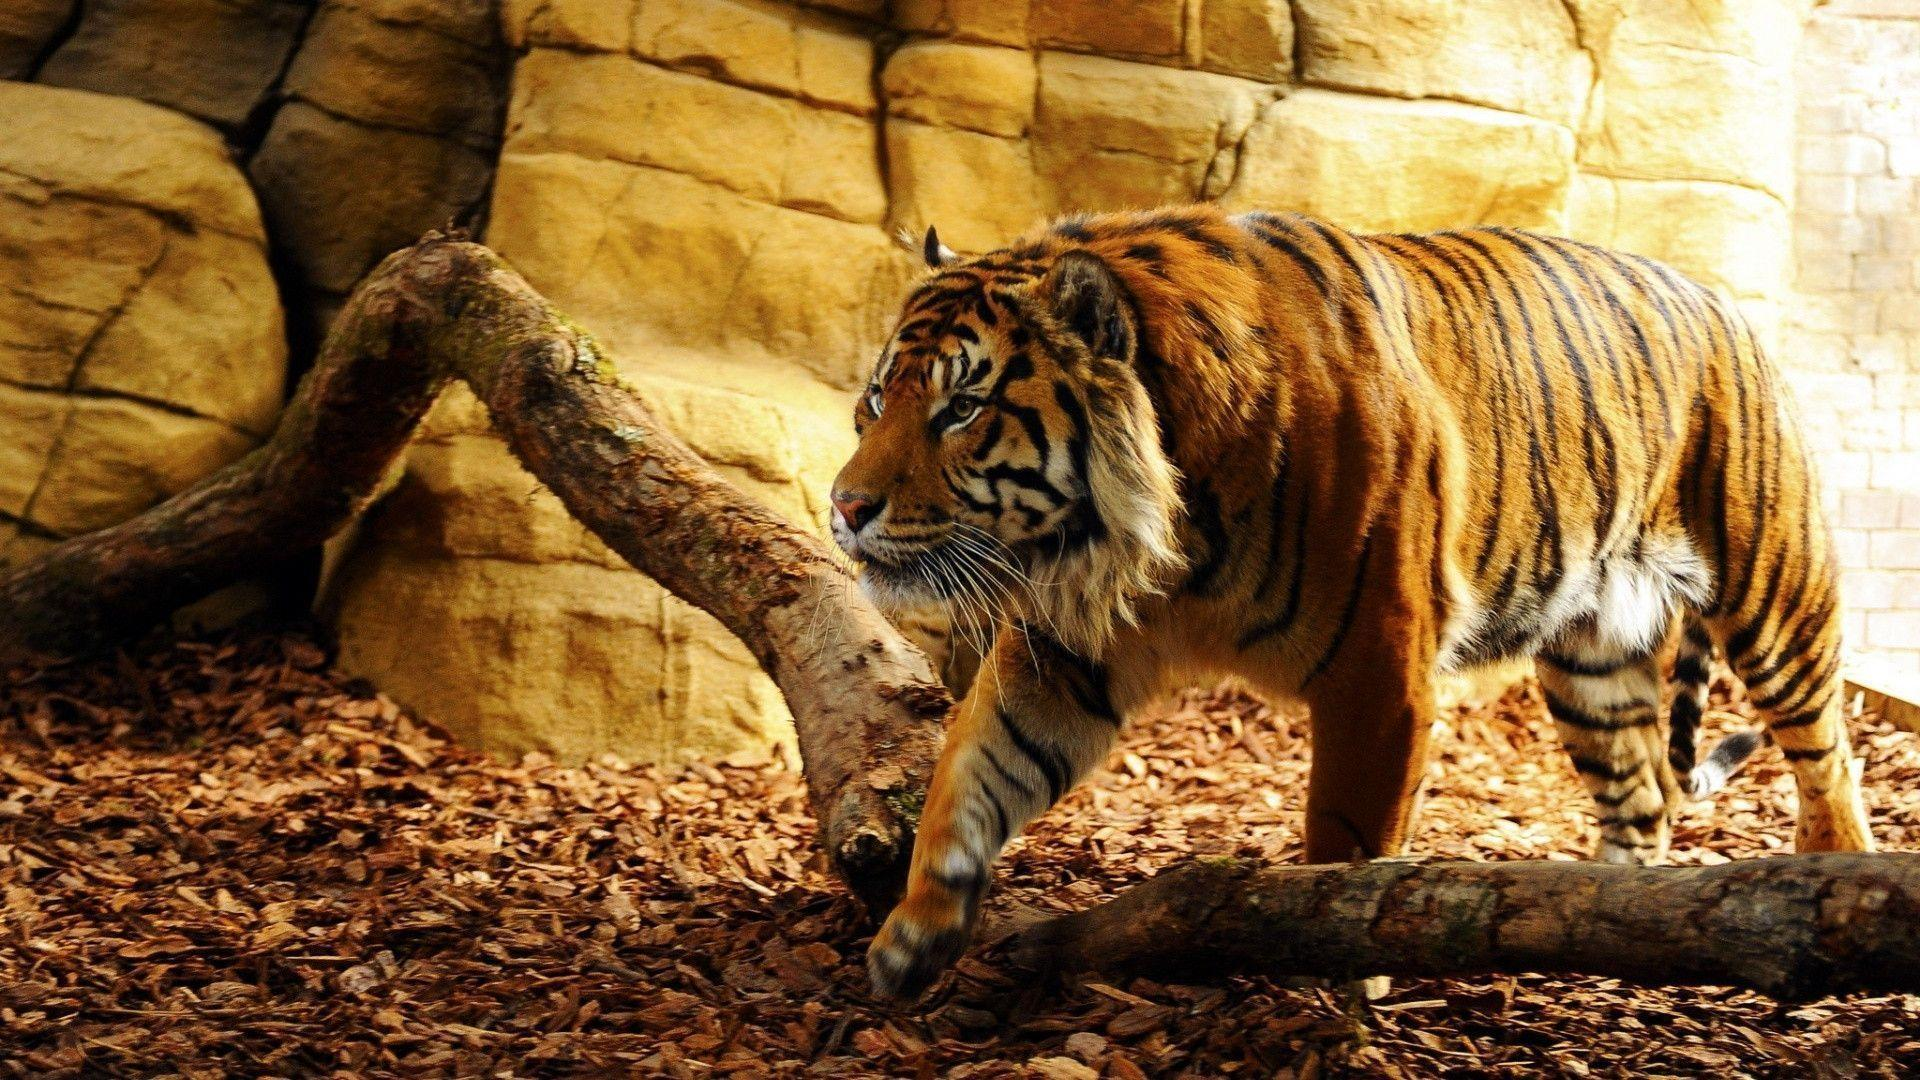 Wallpapers Tiger  Wallpaper Cave